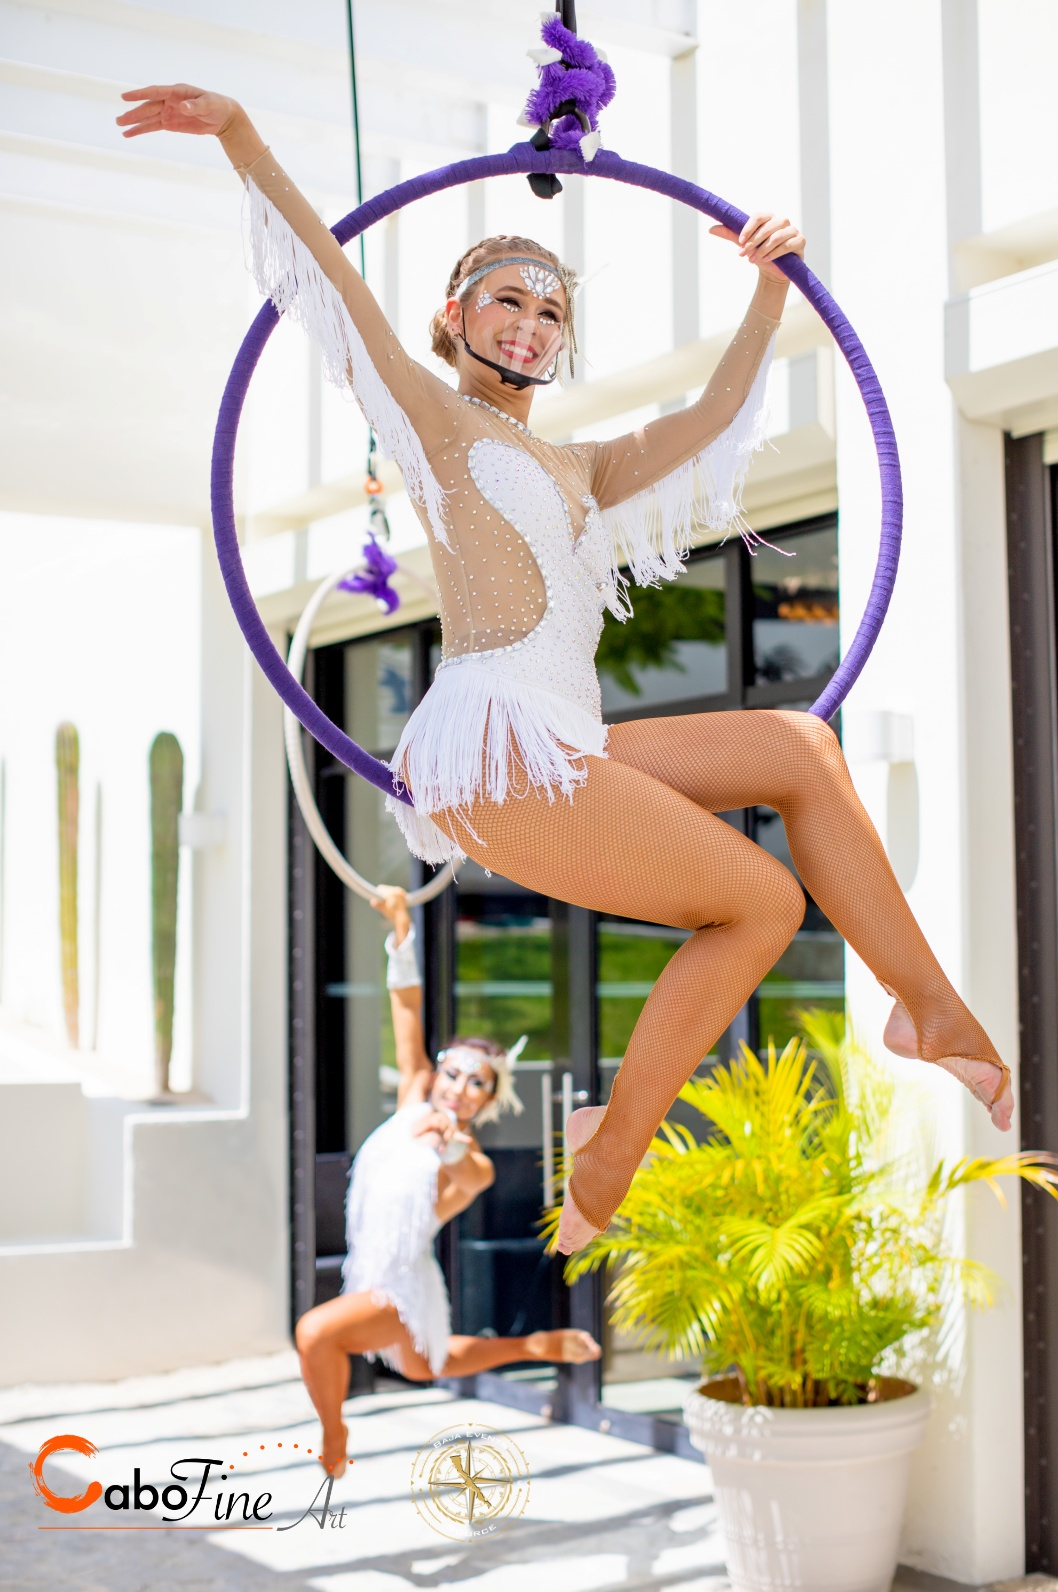 cabo fine entertainment aerial dancers